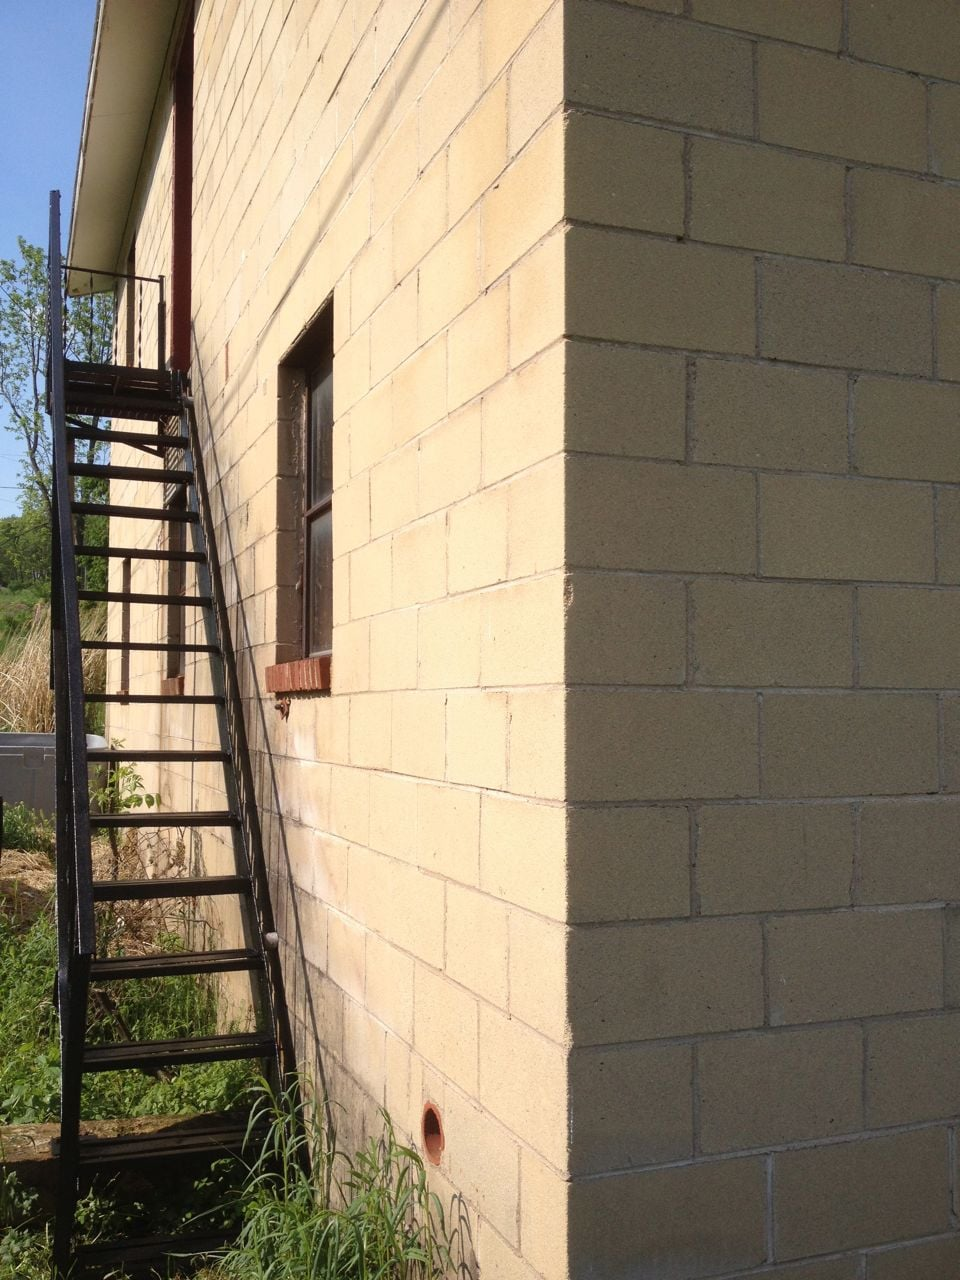 The stairs leading to the guest loft, located on the backside of the brick building.